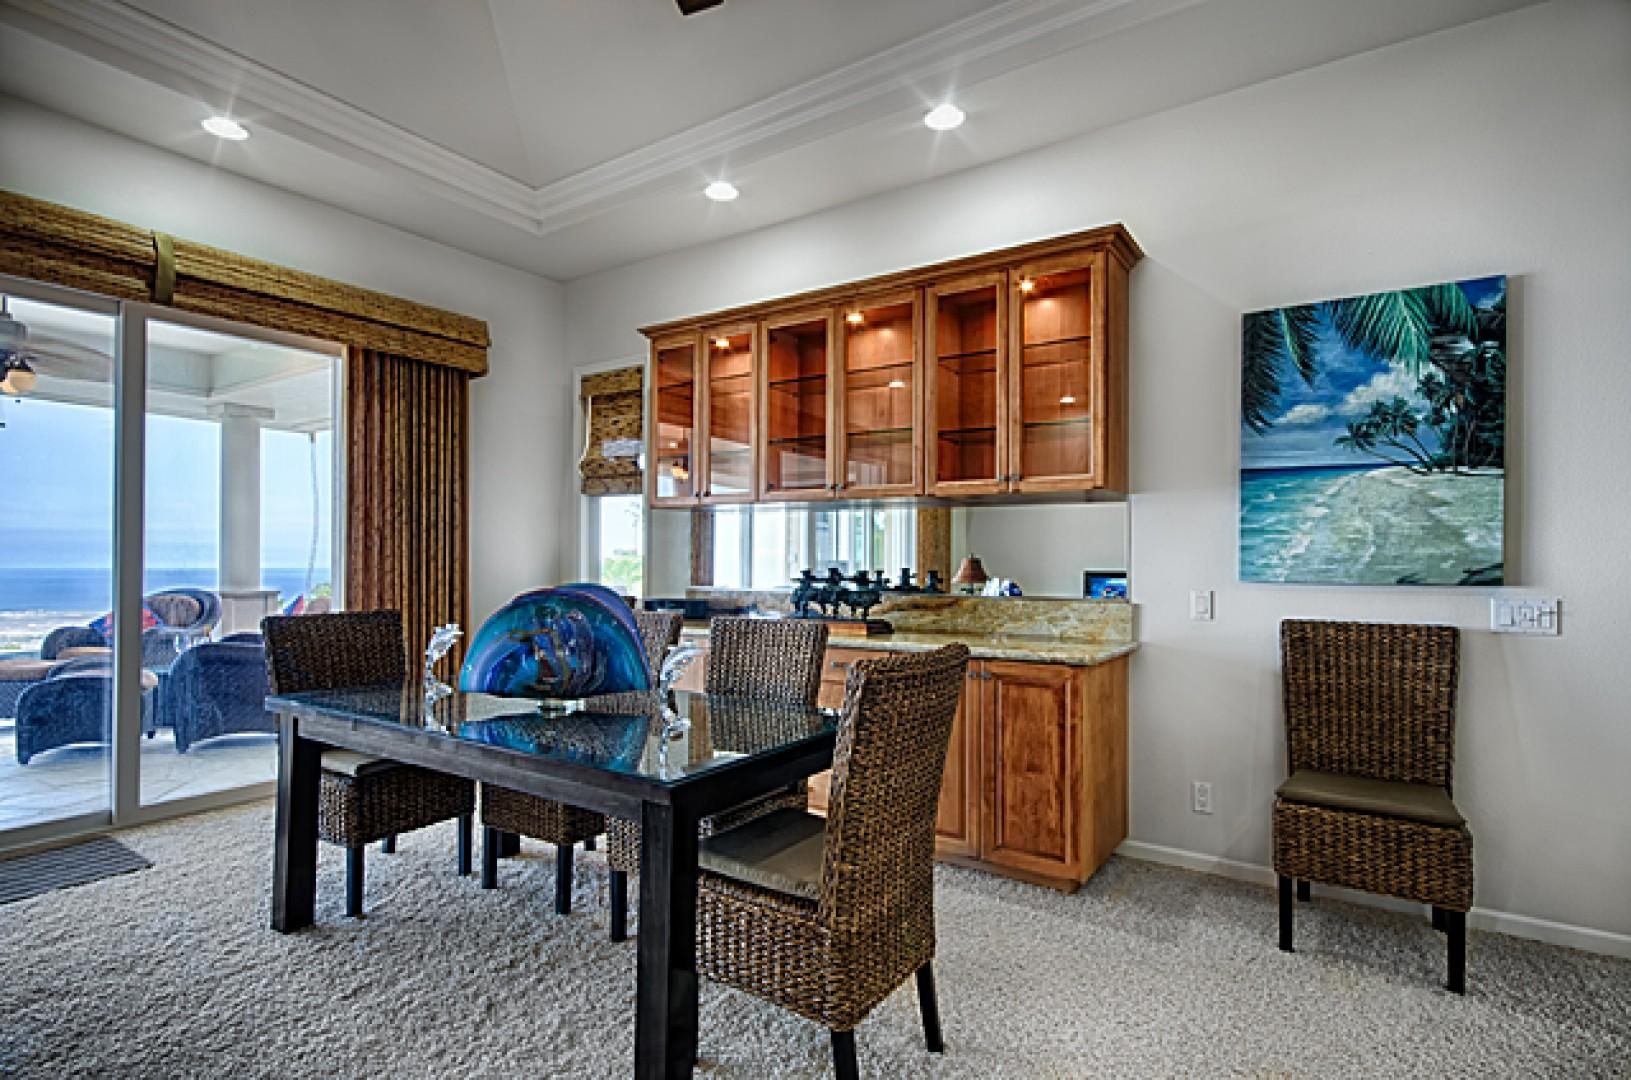 Enjoy dinner at home with style & privacy!